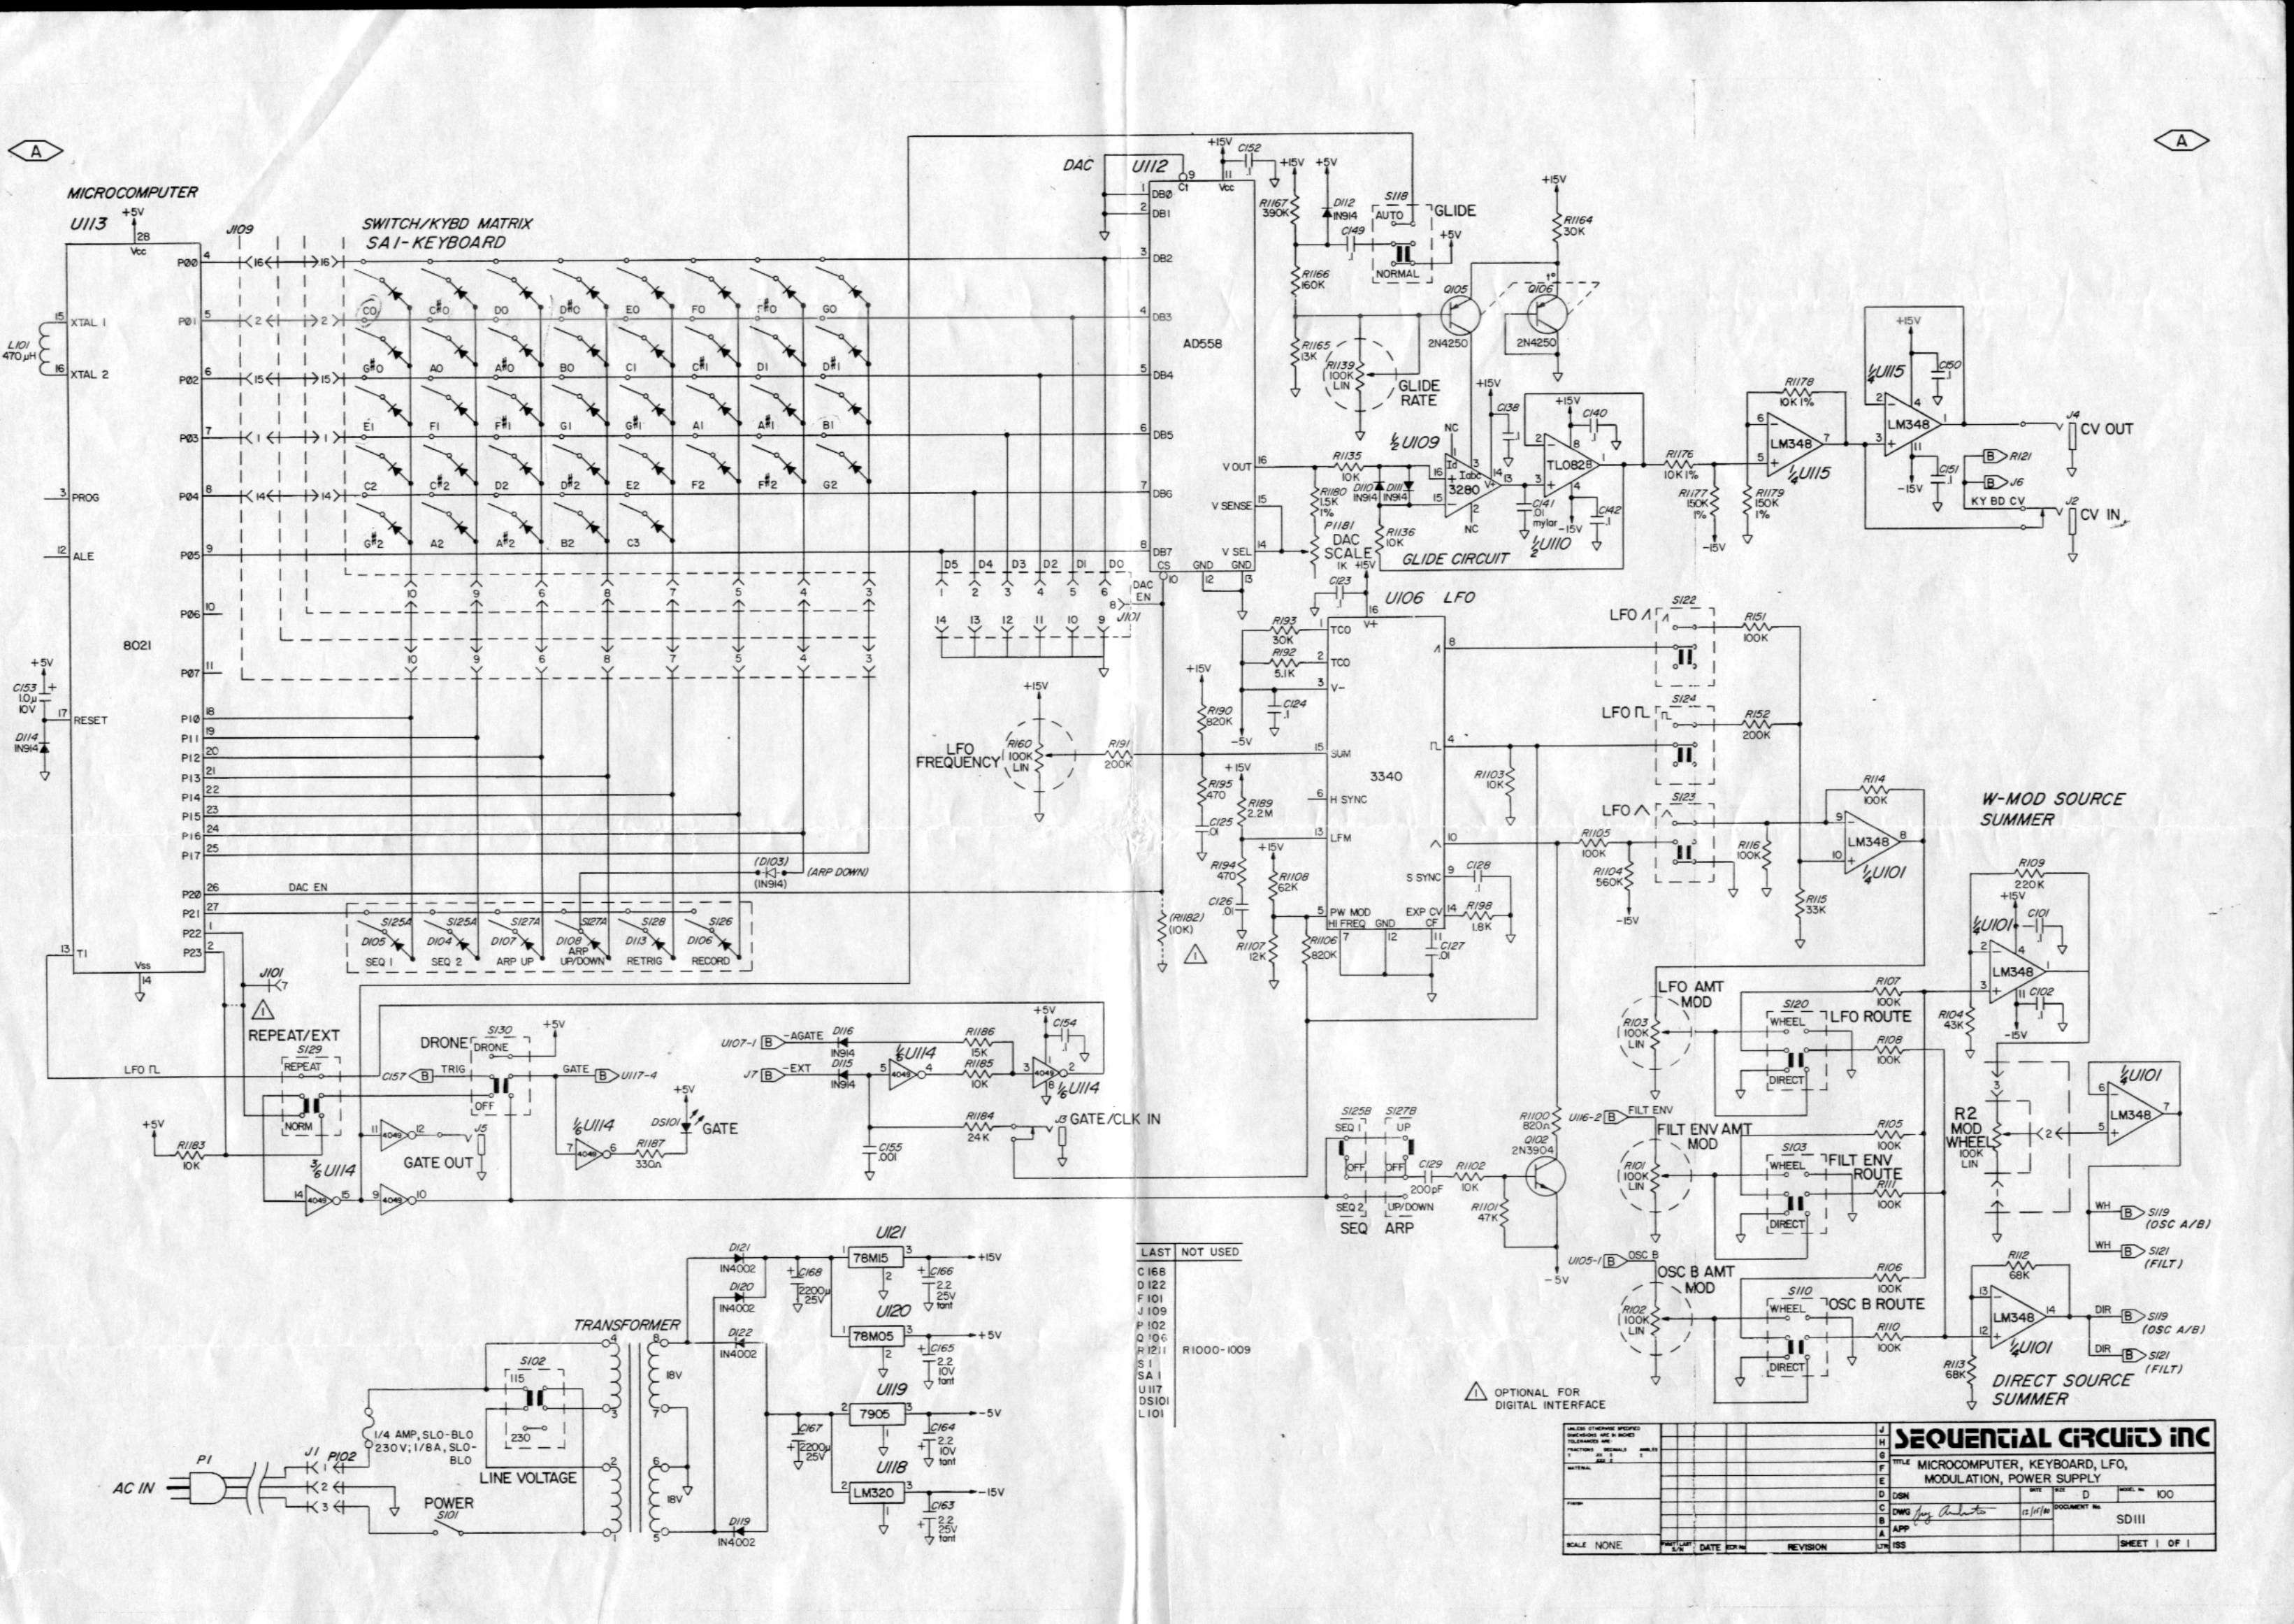 28 wiring diagram of mio sporty jeffdoedesign jzgreentown yamaha mio sporty electrical wiring diagram efcaviation asfbconference2016 Image collections